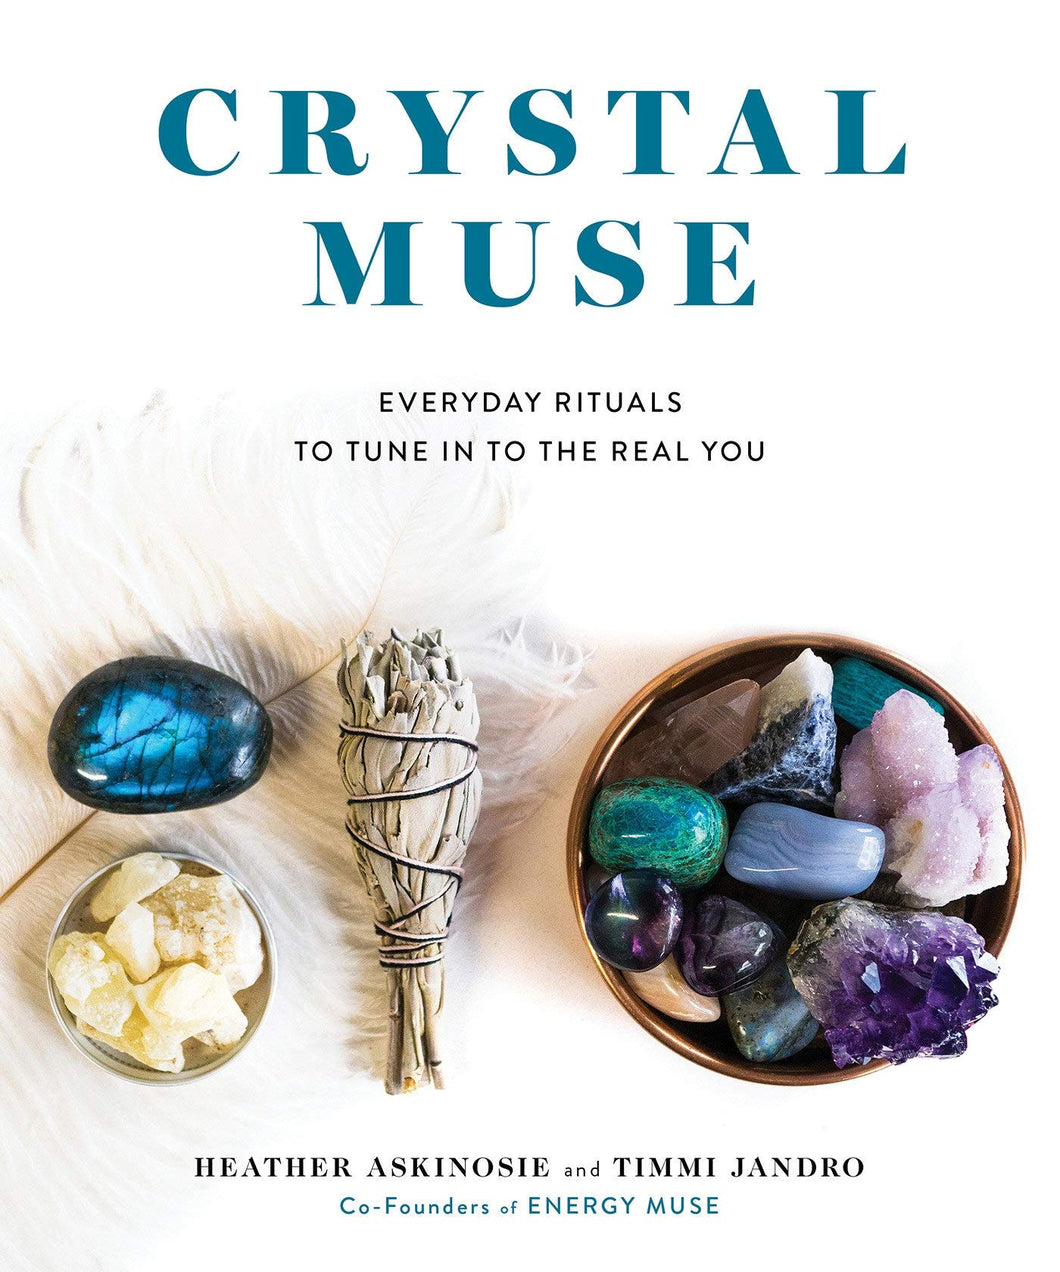 CRYSTAL MUSE - Author: Askinosie, Heather and Jandro, Timmi